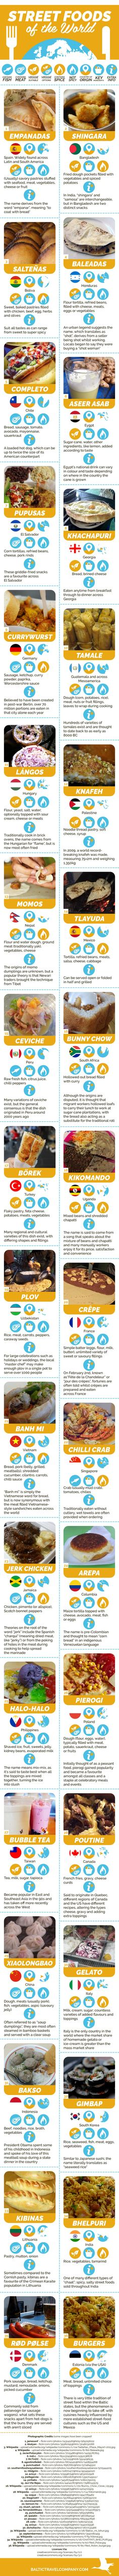 Street Foods of the World #Infographic ~ Visualistan